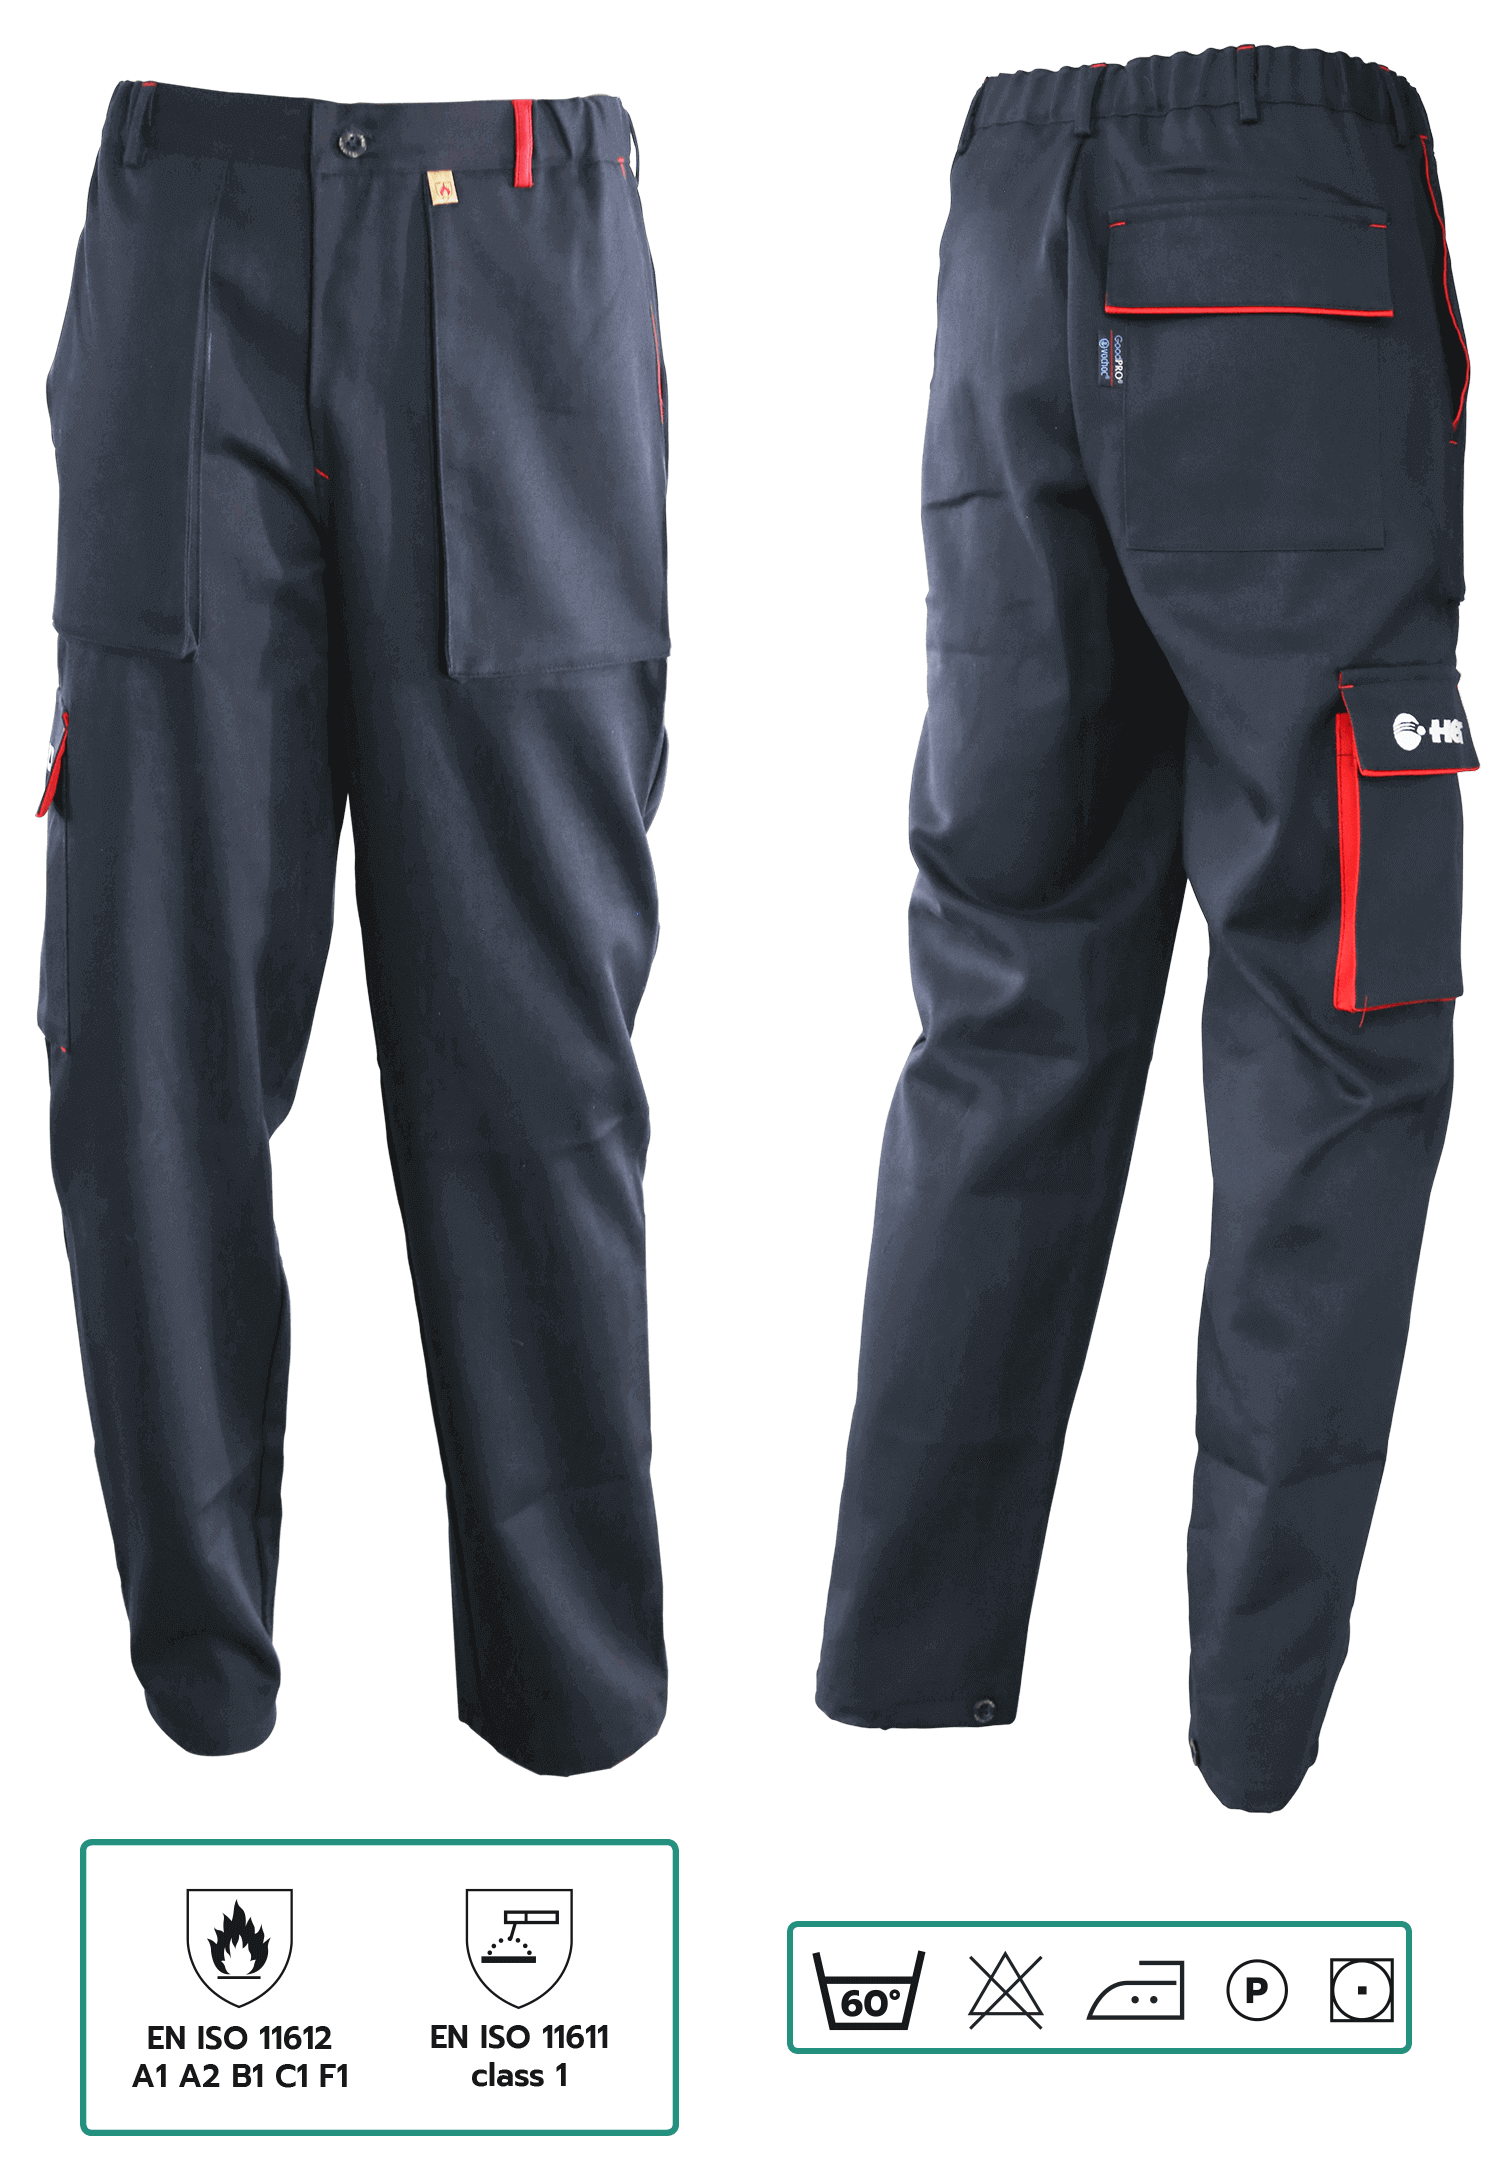 Welding trousers